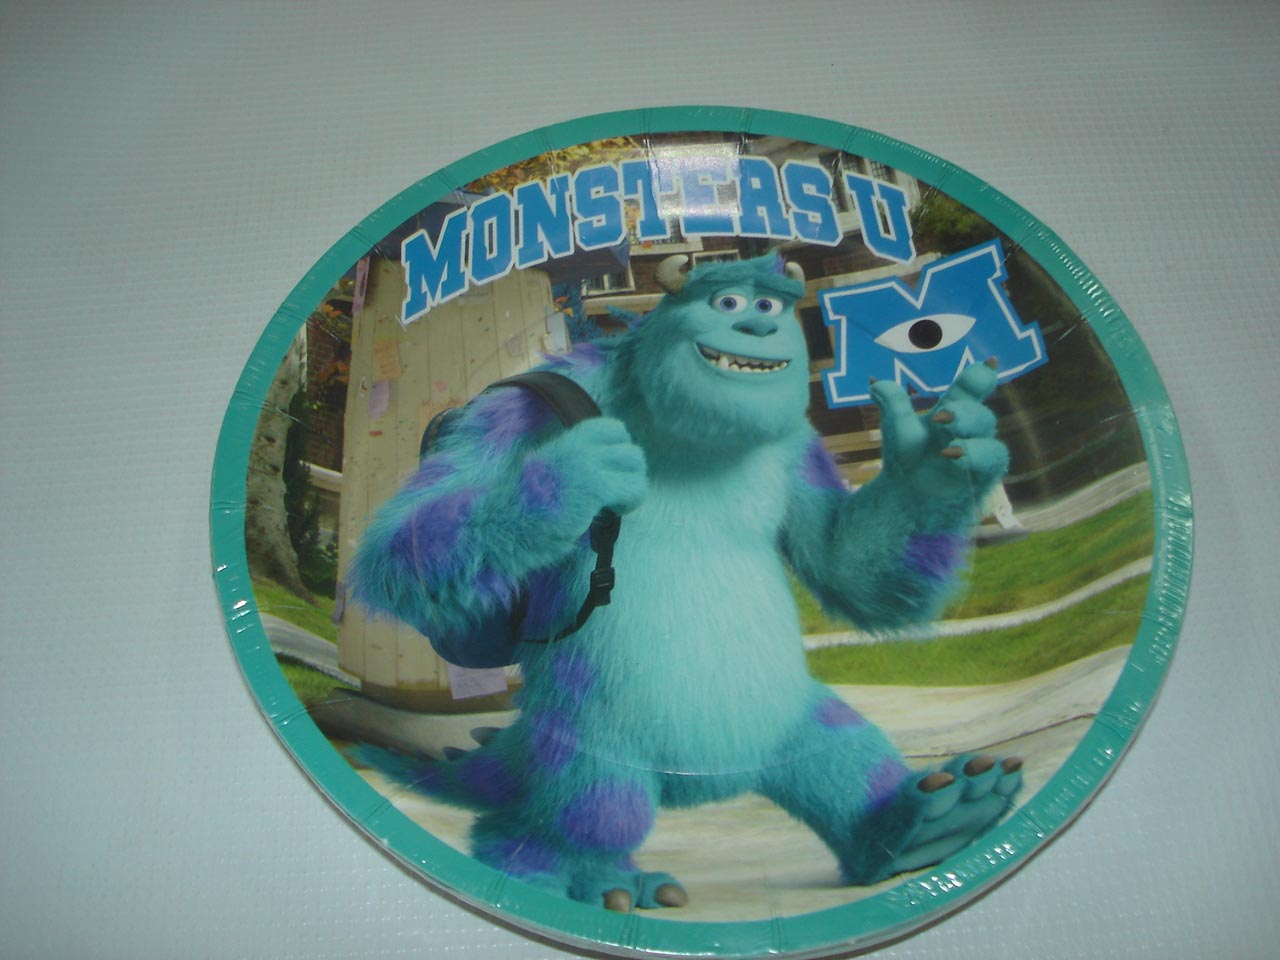 PLATOS DE SULLEY MONSTER UNIVERSITY